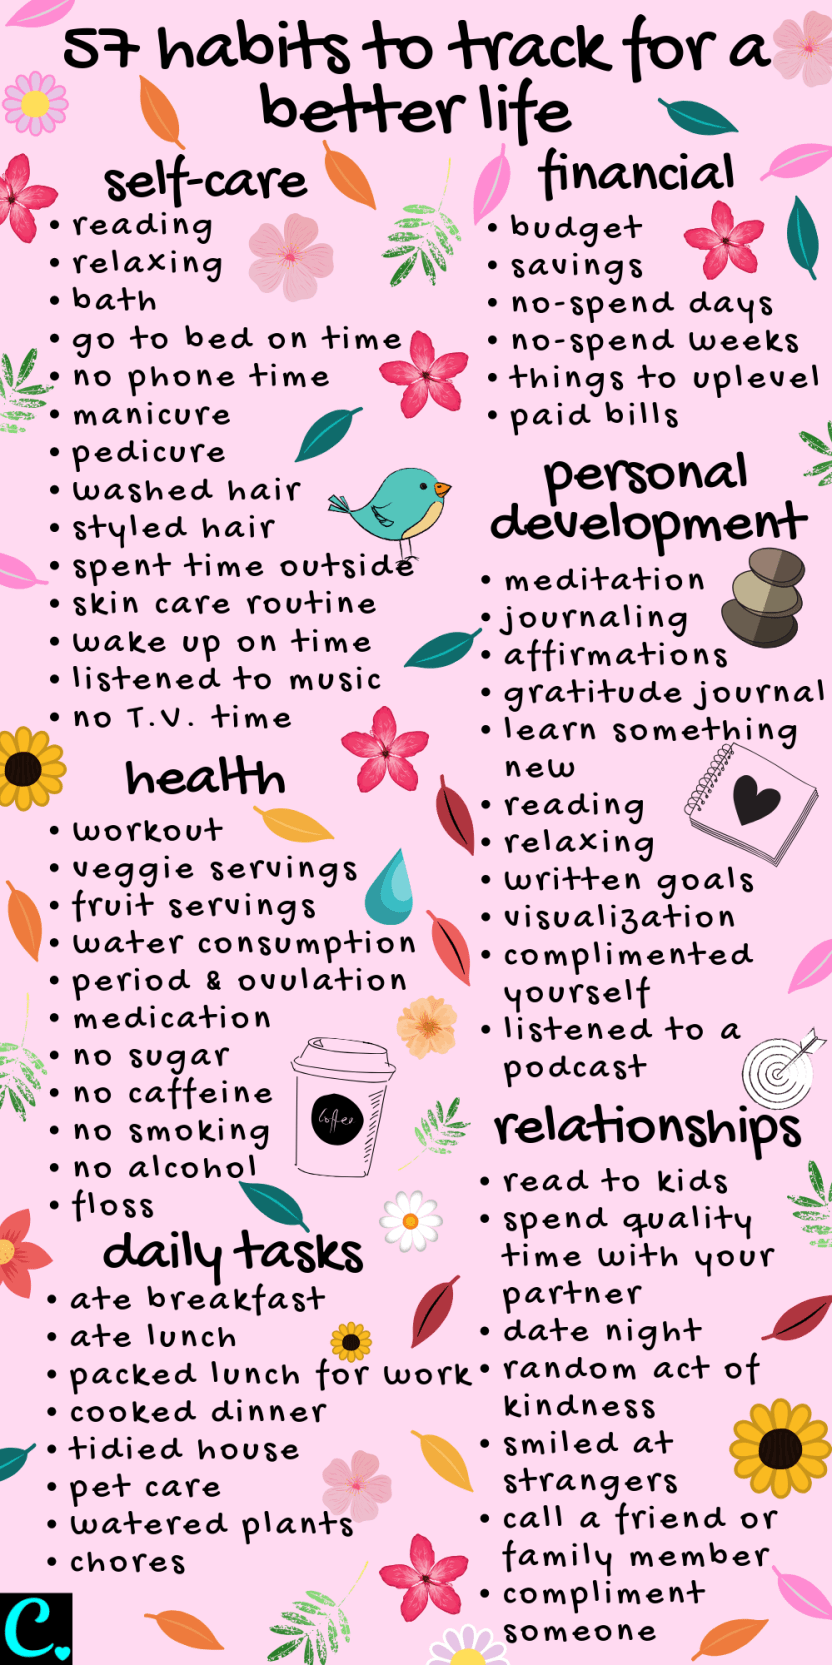 57 habits to track for a better lifestyle | track these healthy habits in your bullet journal #habittracker #habitinfographic #selfcareinfographic #habitinfographic #infographic #personaldevelopment